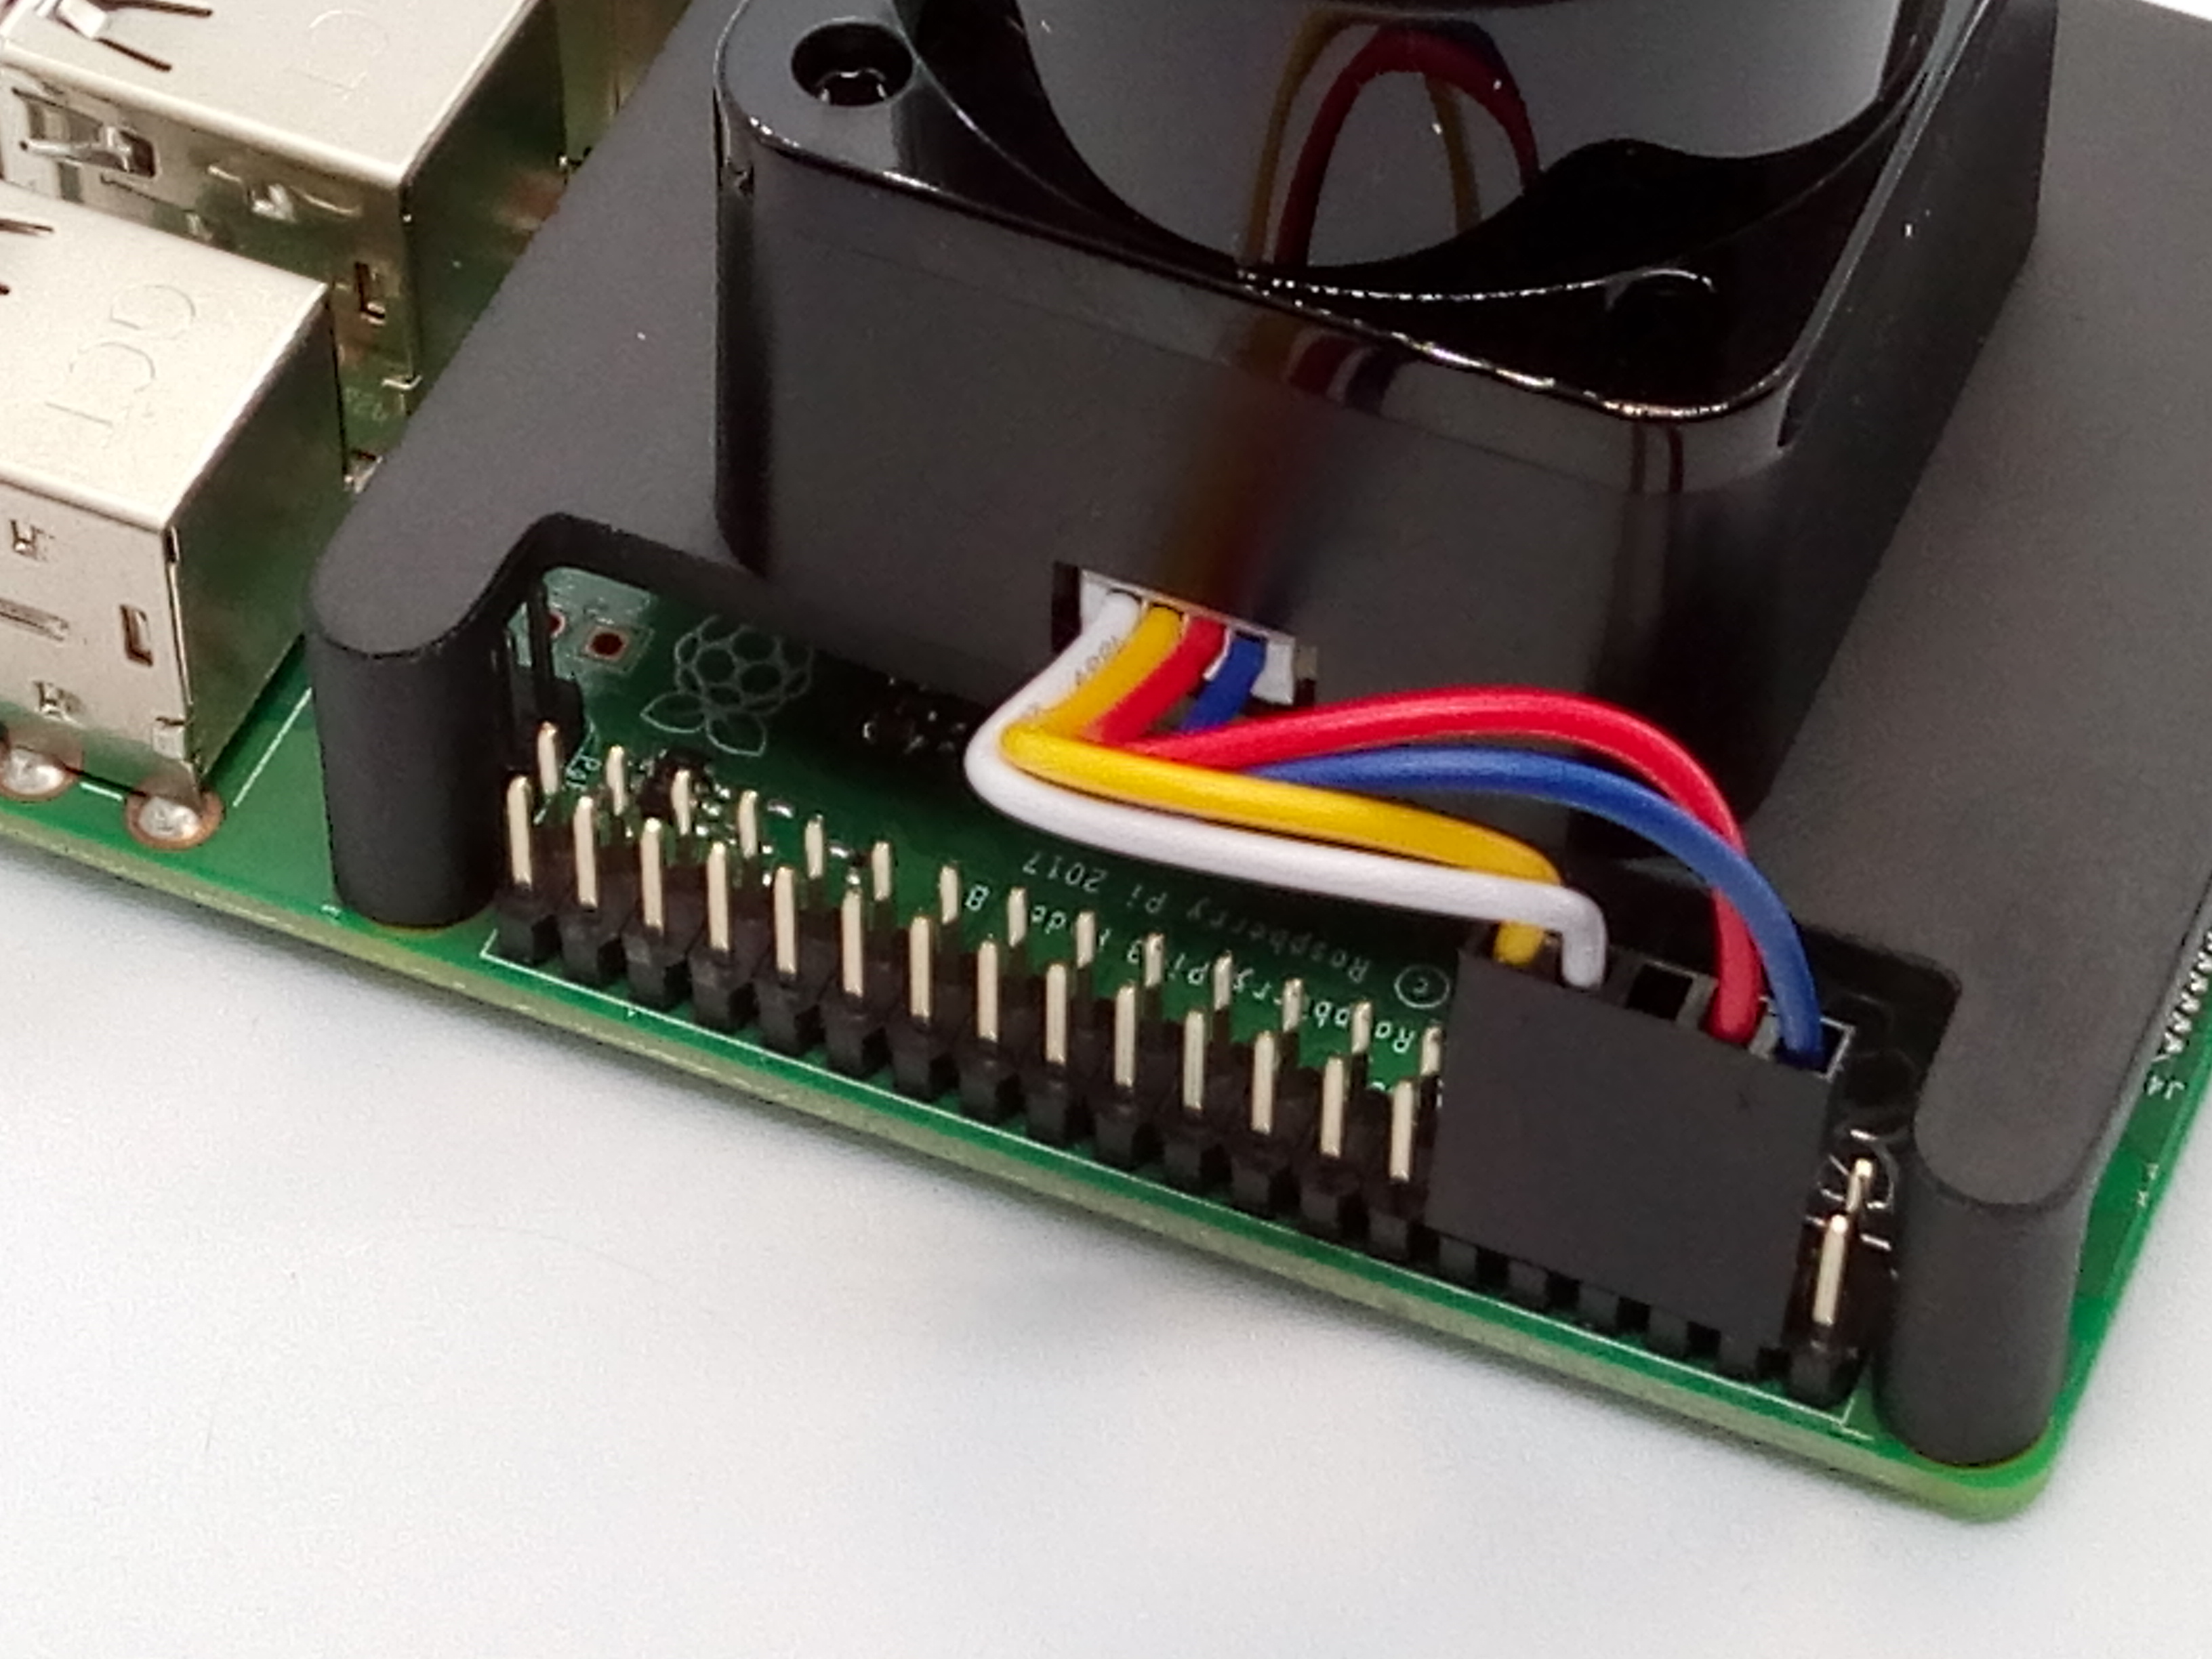 Lidar connection to Raspberry PI